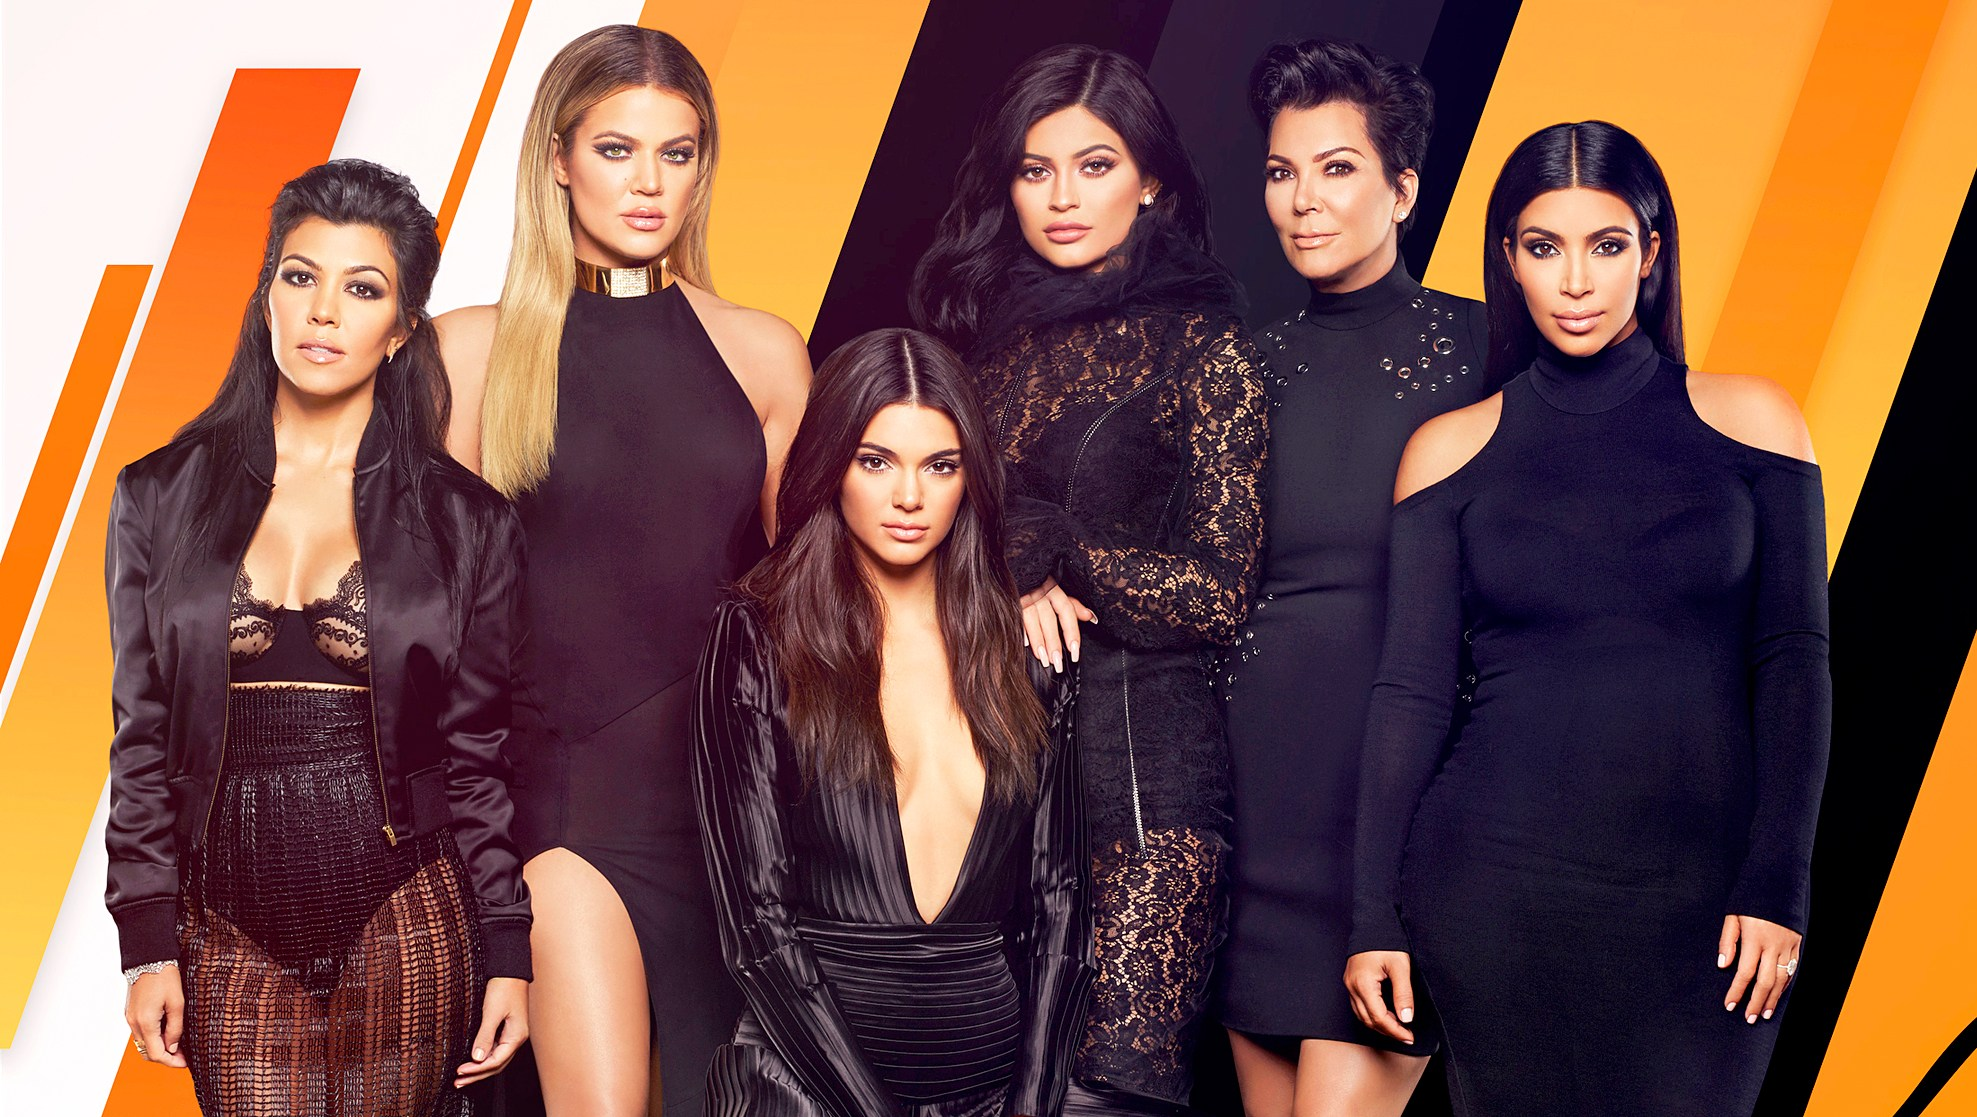 'Keeping Up With The Kardashians' stars Kourtney Kardashian, Khloe Kardashian, Kendall Jenner, Kylie Jenner, Kris Jenner and Kim Kardashian